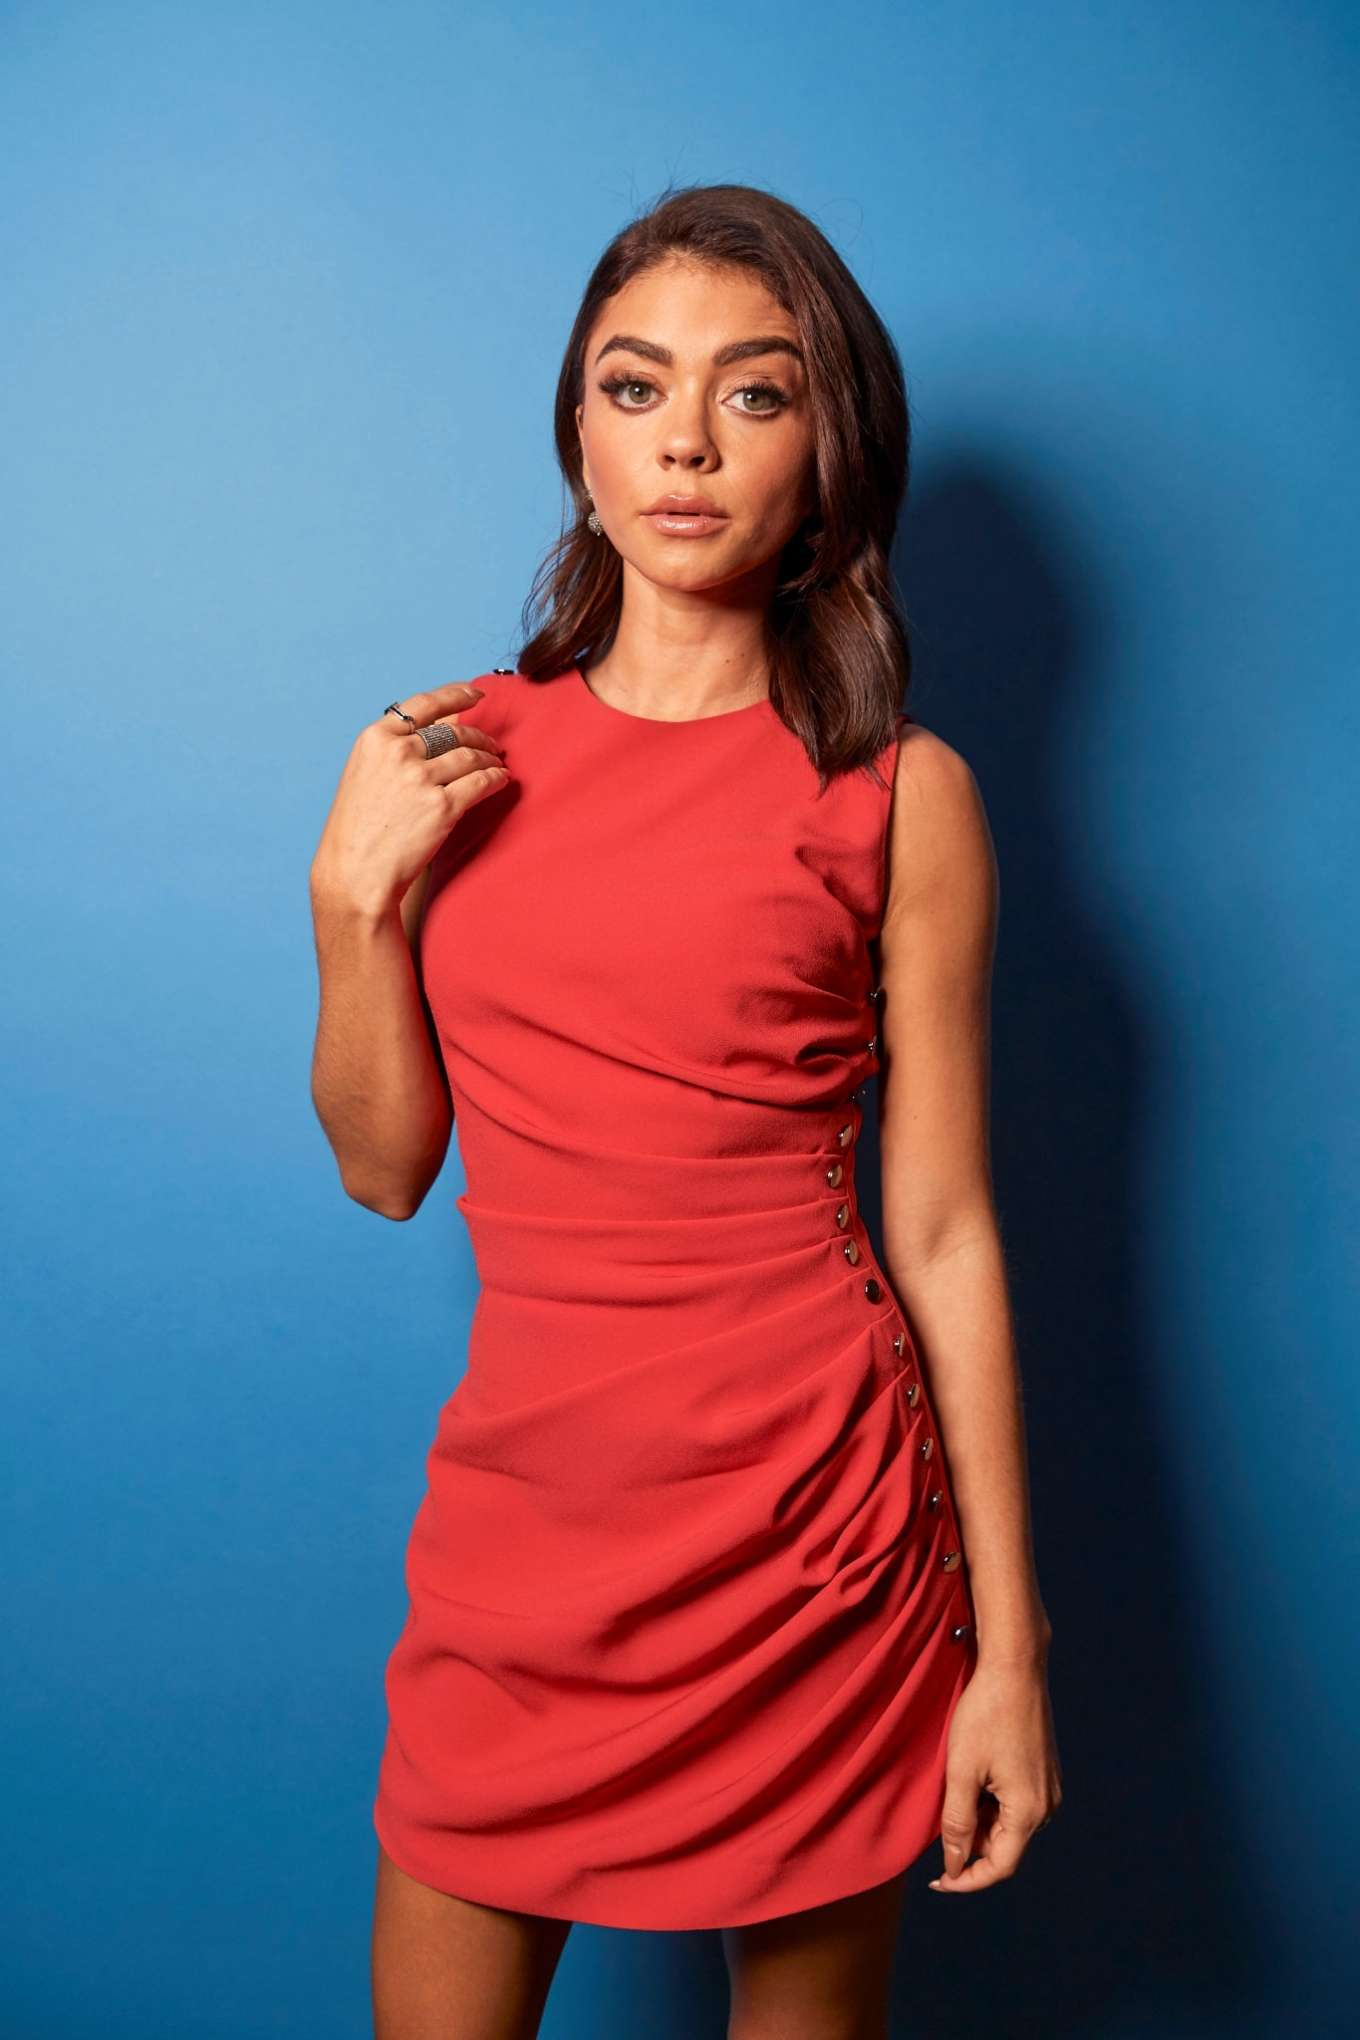 Sarah Hyland - 2020 Winter TCA Portraits 2020